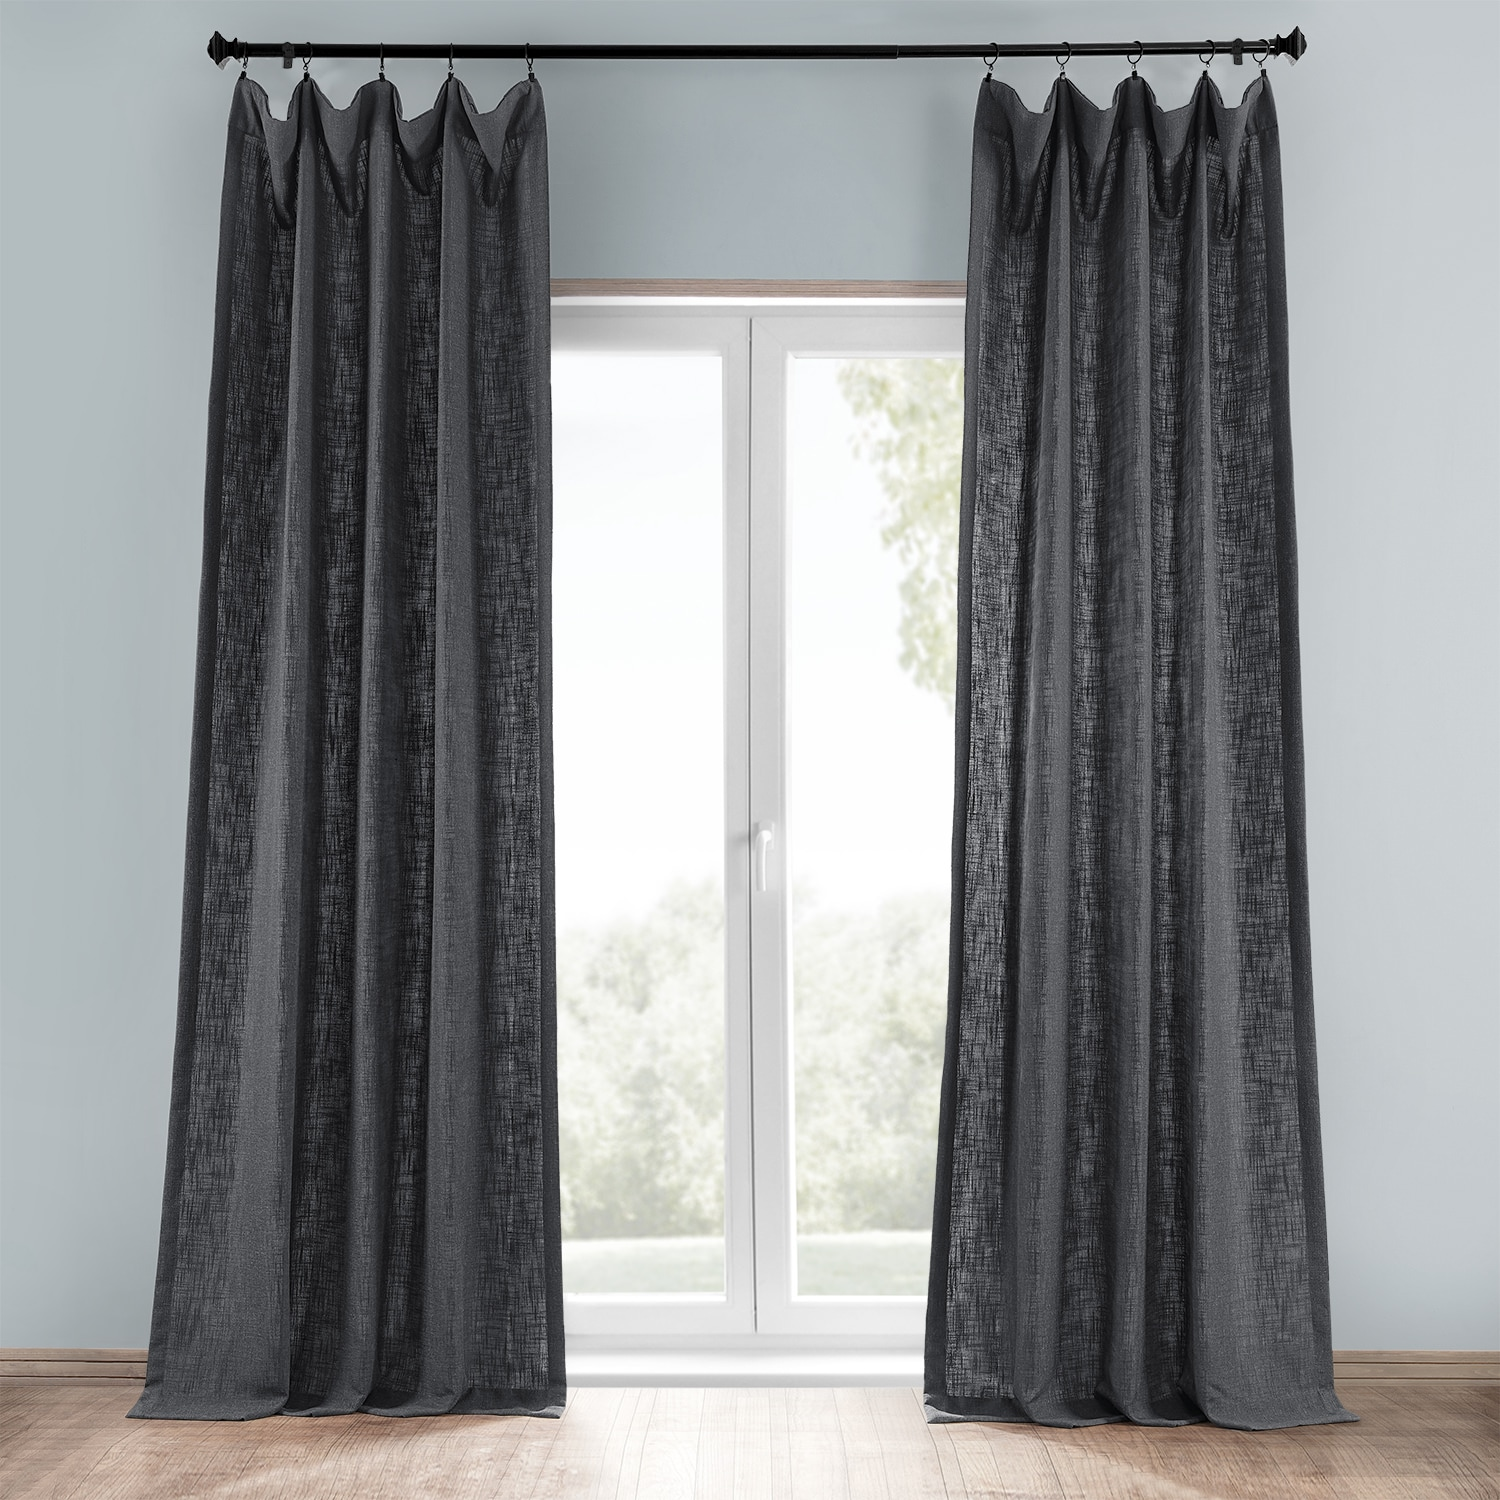 curtains cancun slate eyelet curtain